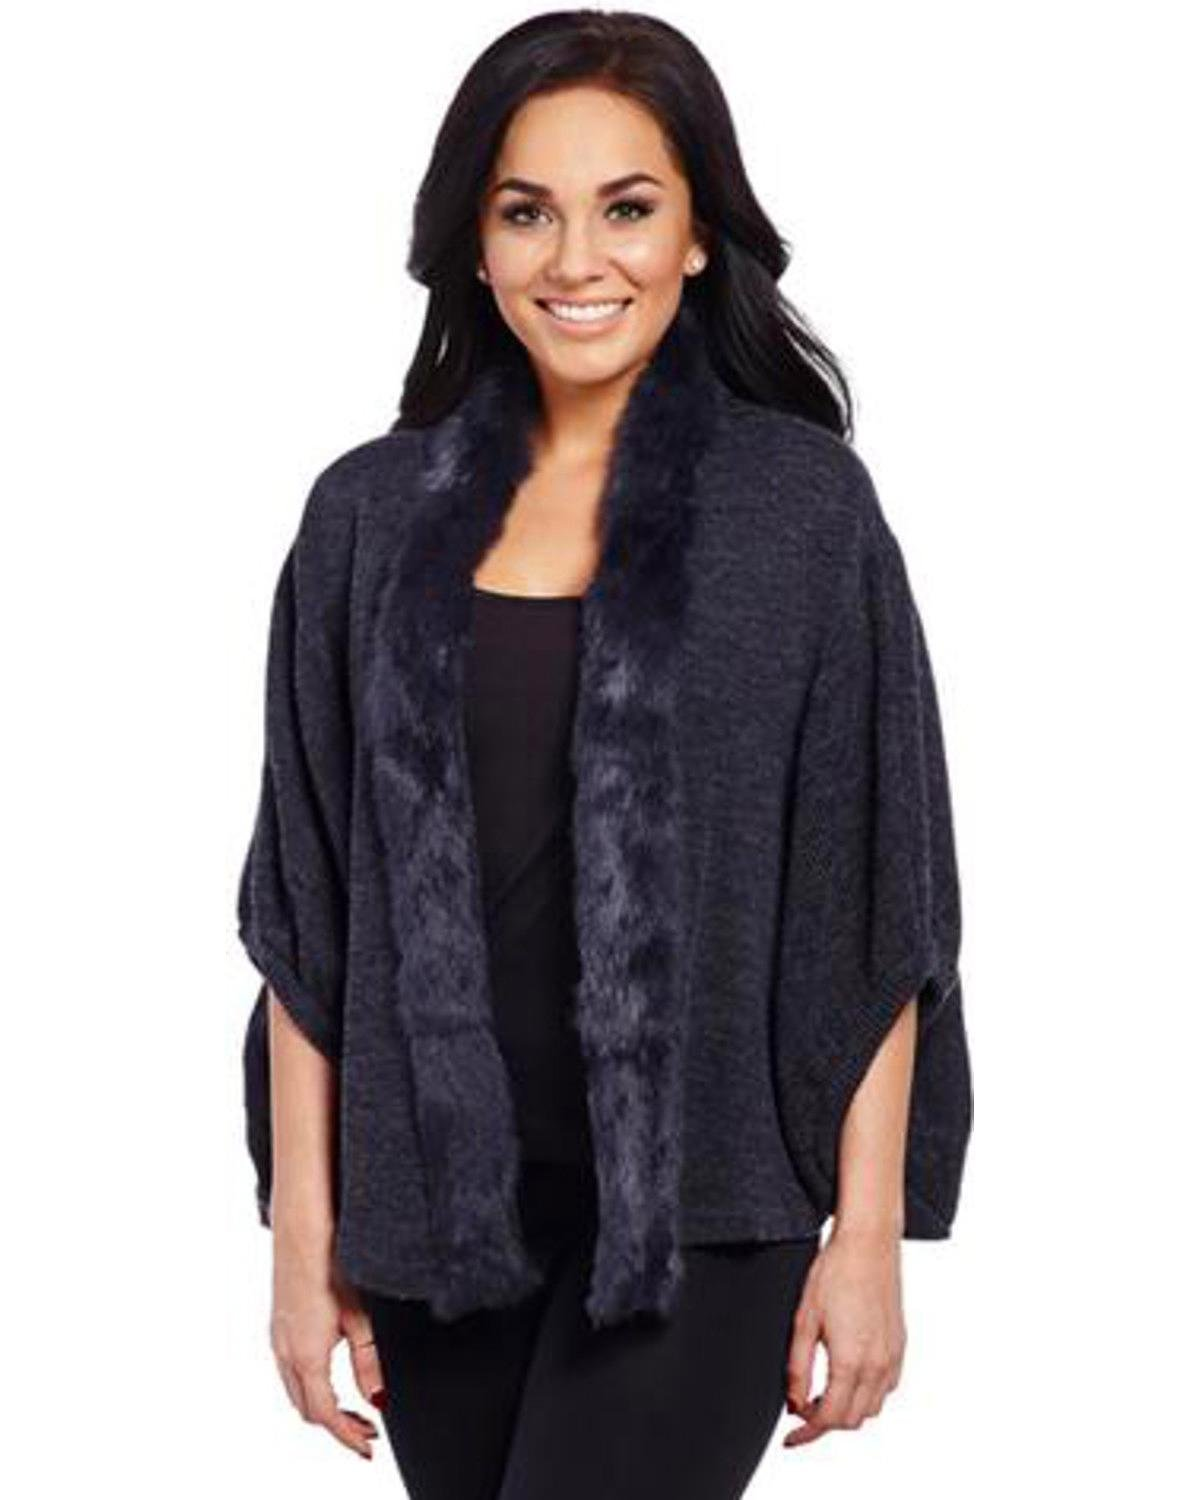 Cripple Creek Women's Charcoal Rabbit-Trimmed Sweater Charcoal Grey Small